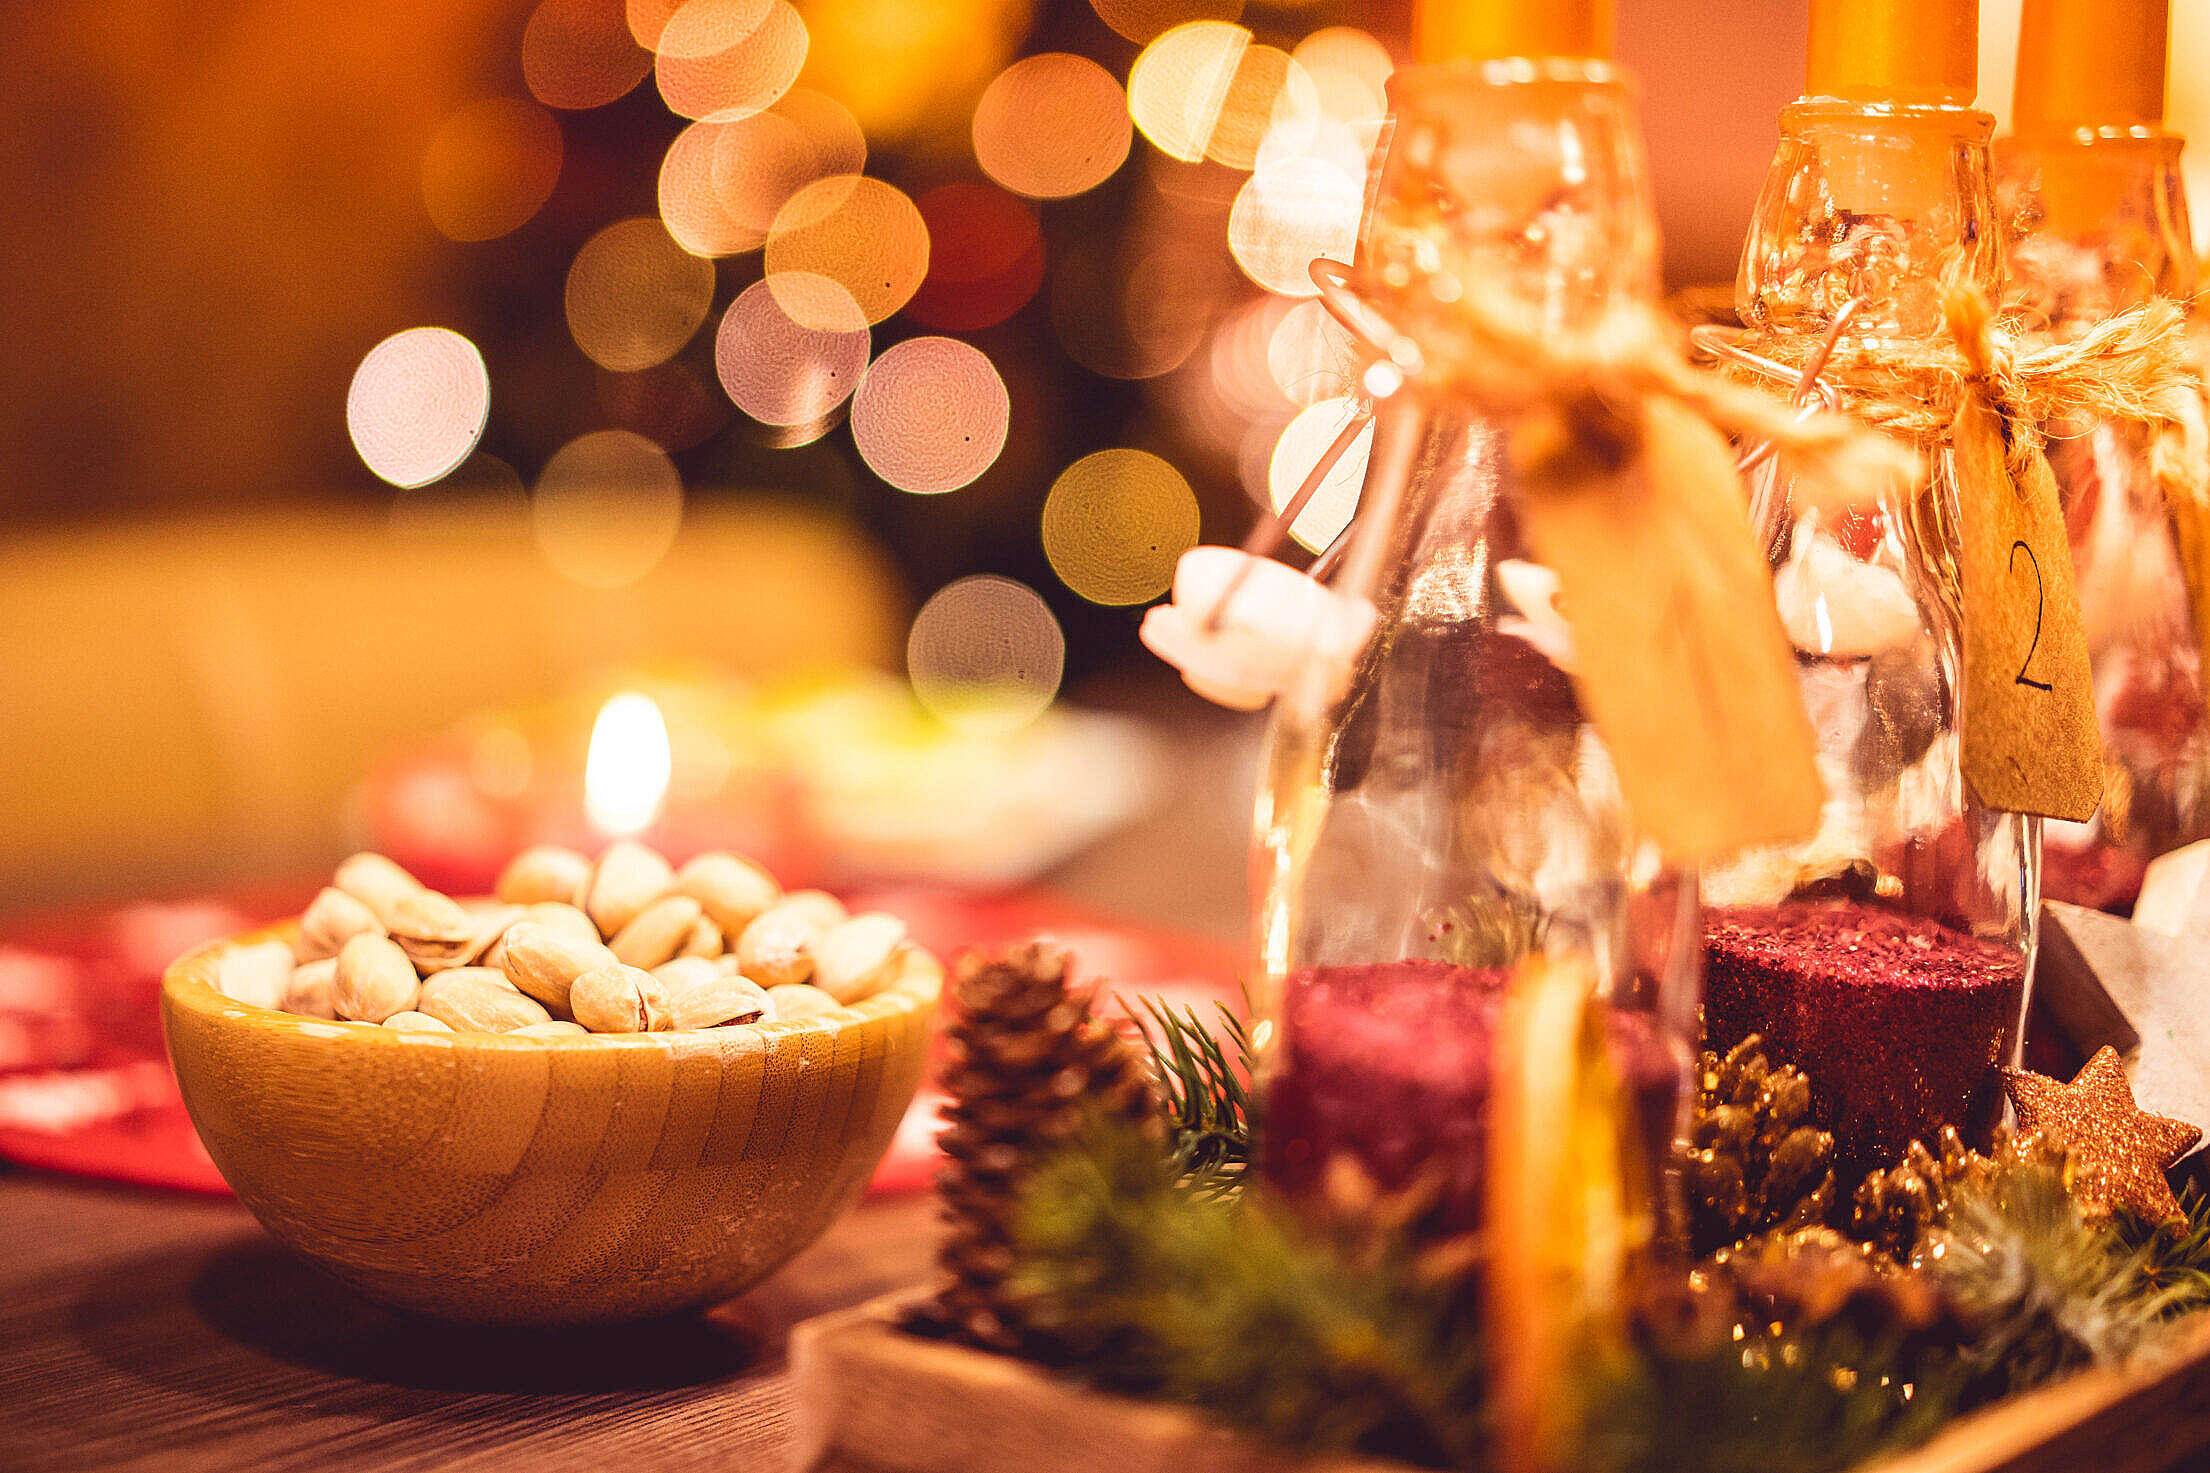 Christmas Evening Decorations and Sweets Free Stock Photo